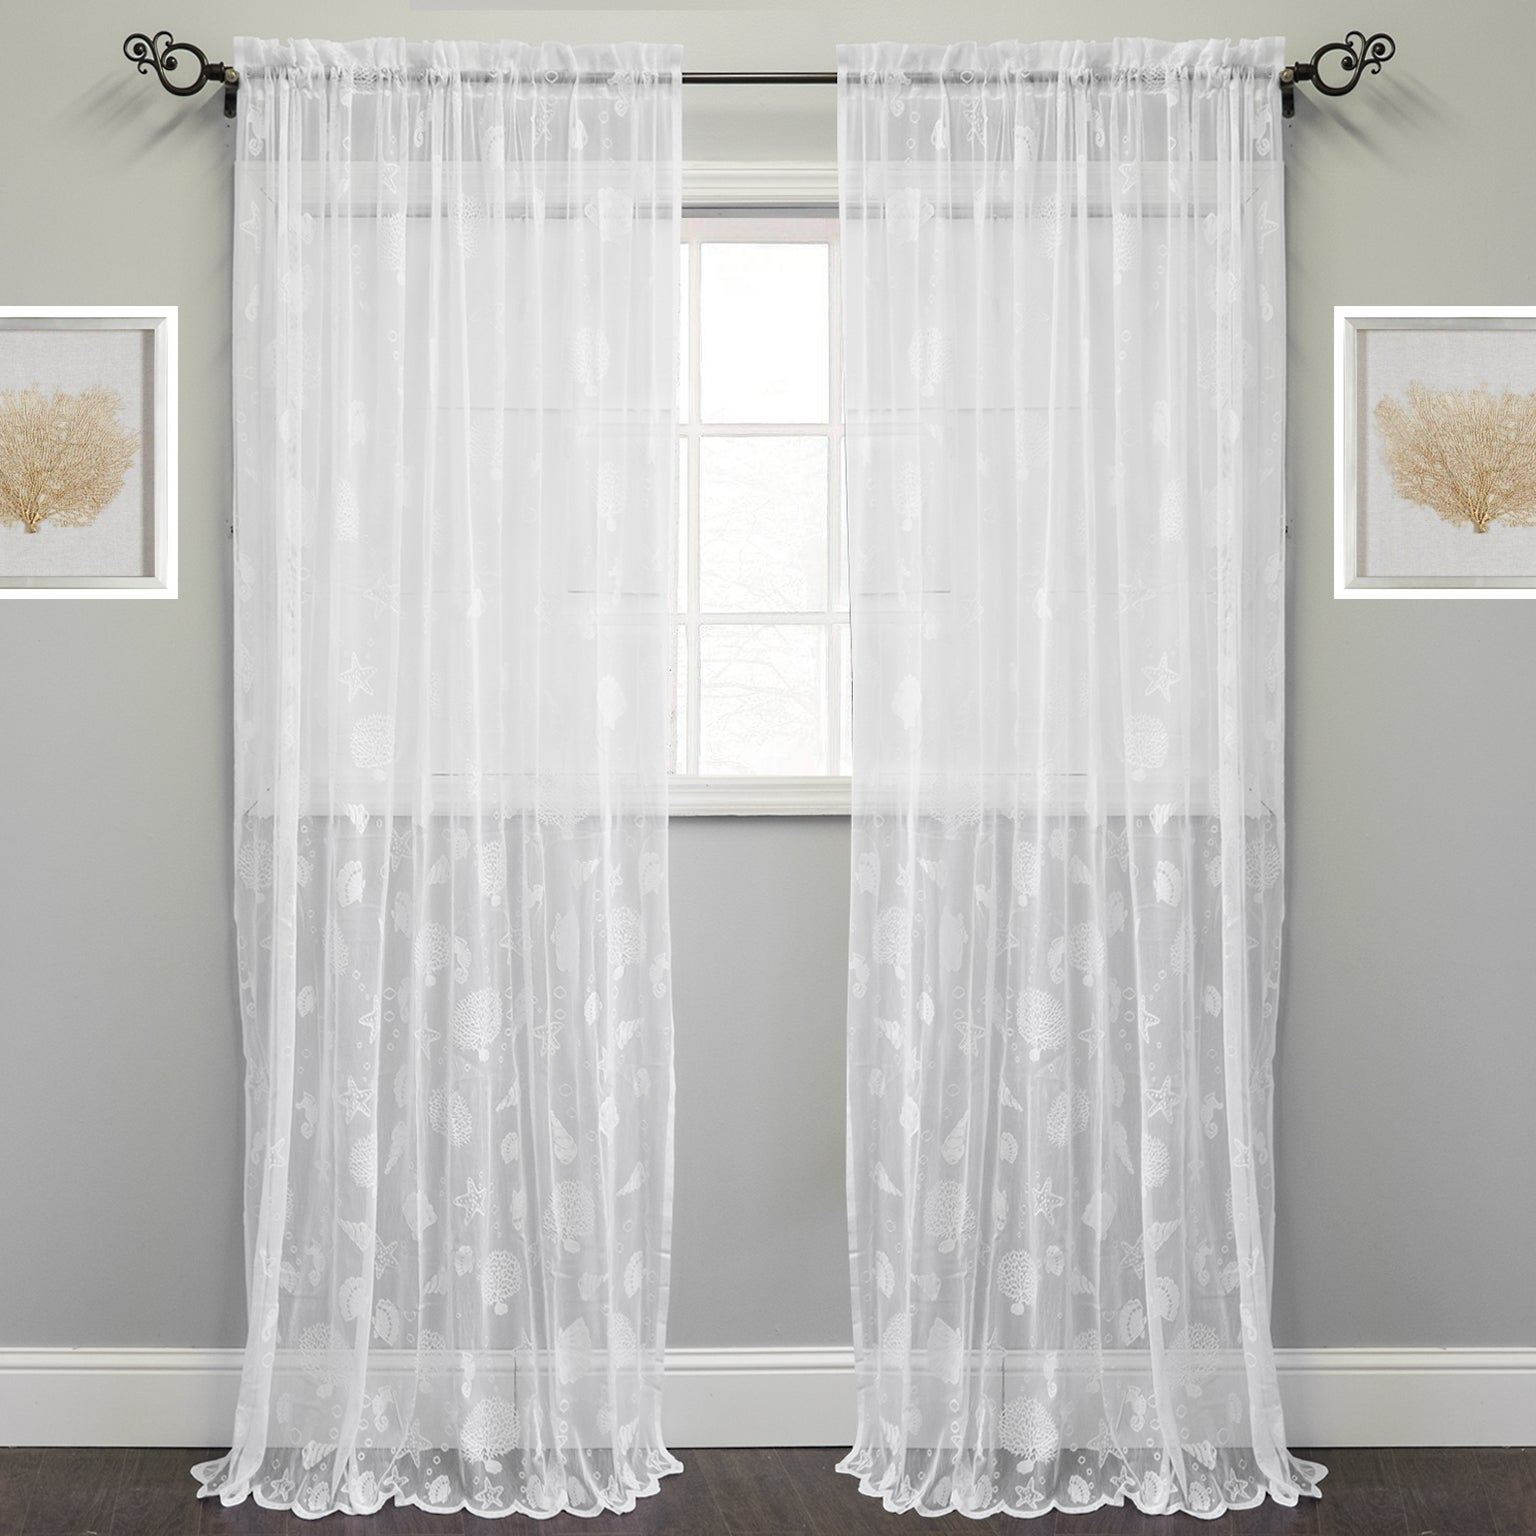 Marine Life Motif Knitted Lace Window Curtain Panel With Marine Life Motif Knitted Lace Window Curtain Pieces (View 3 of 20)